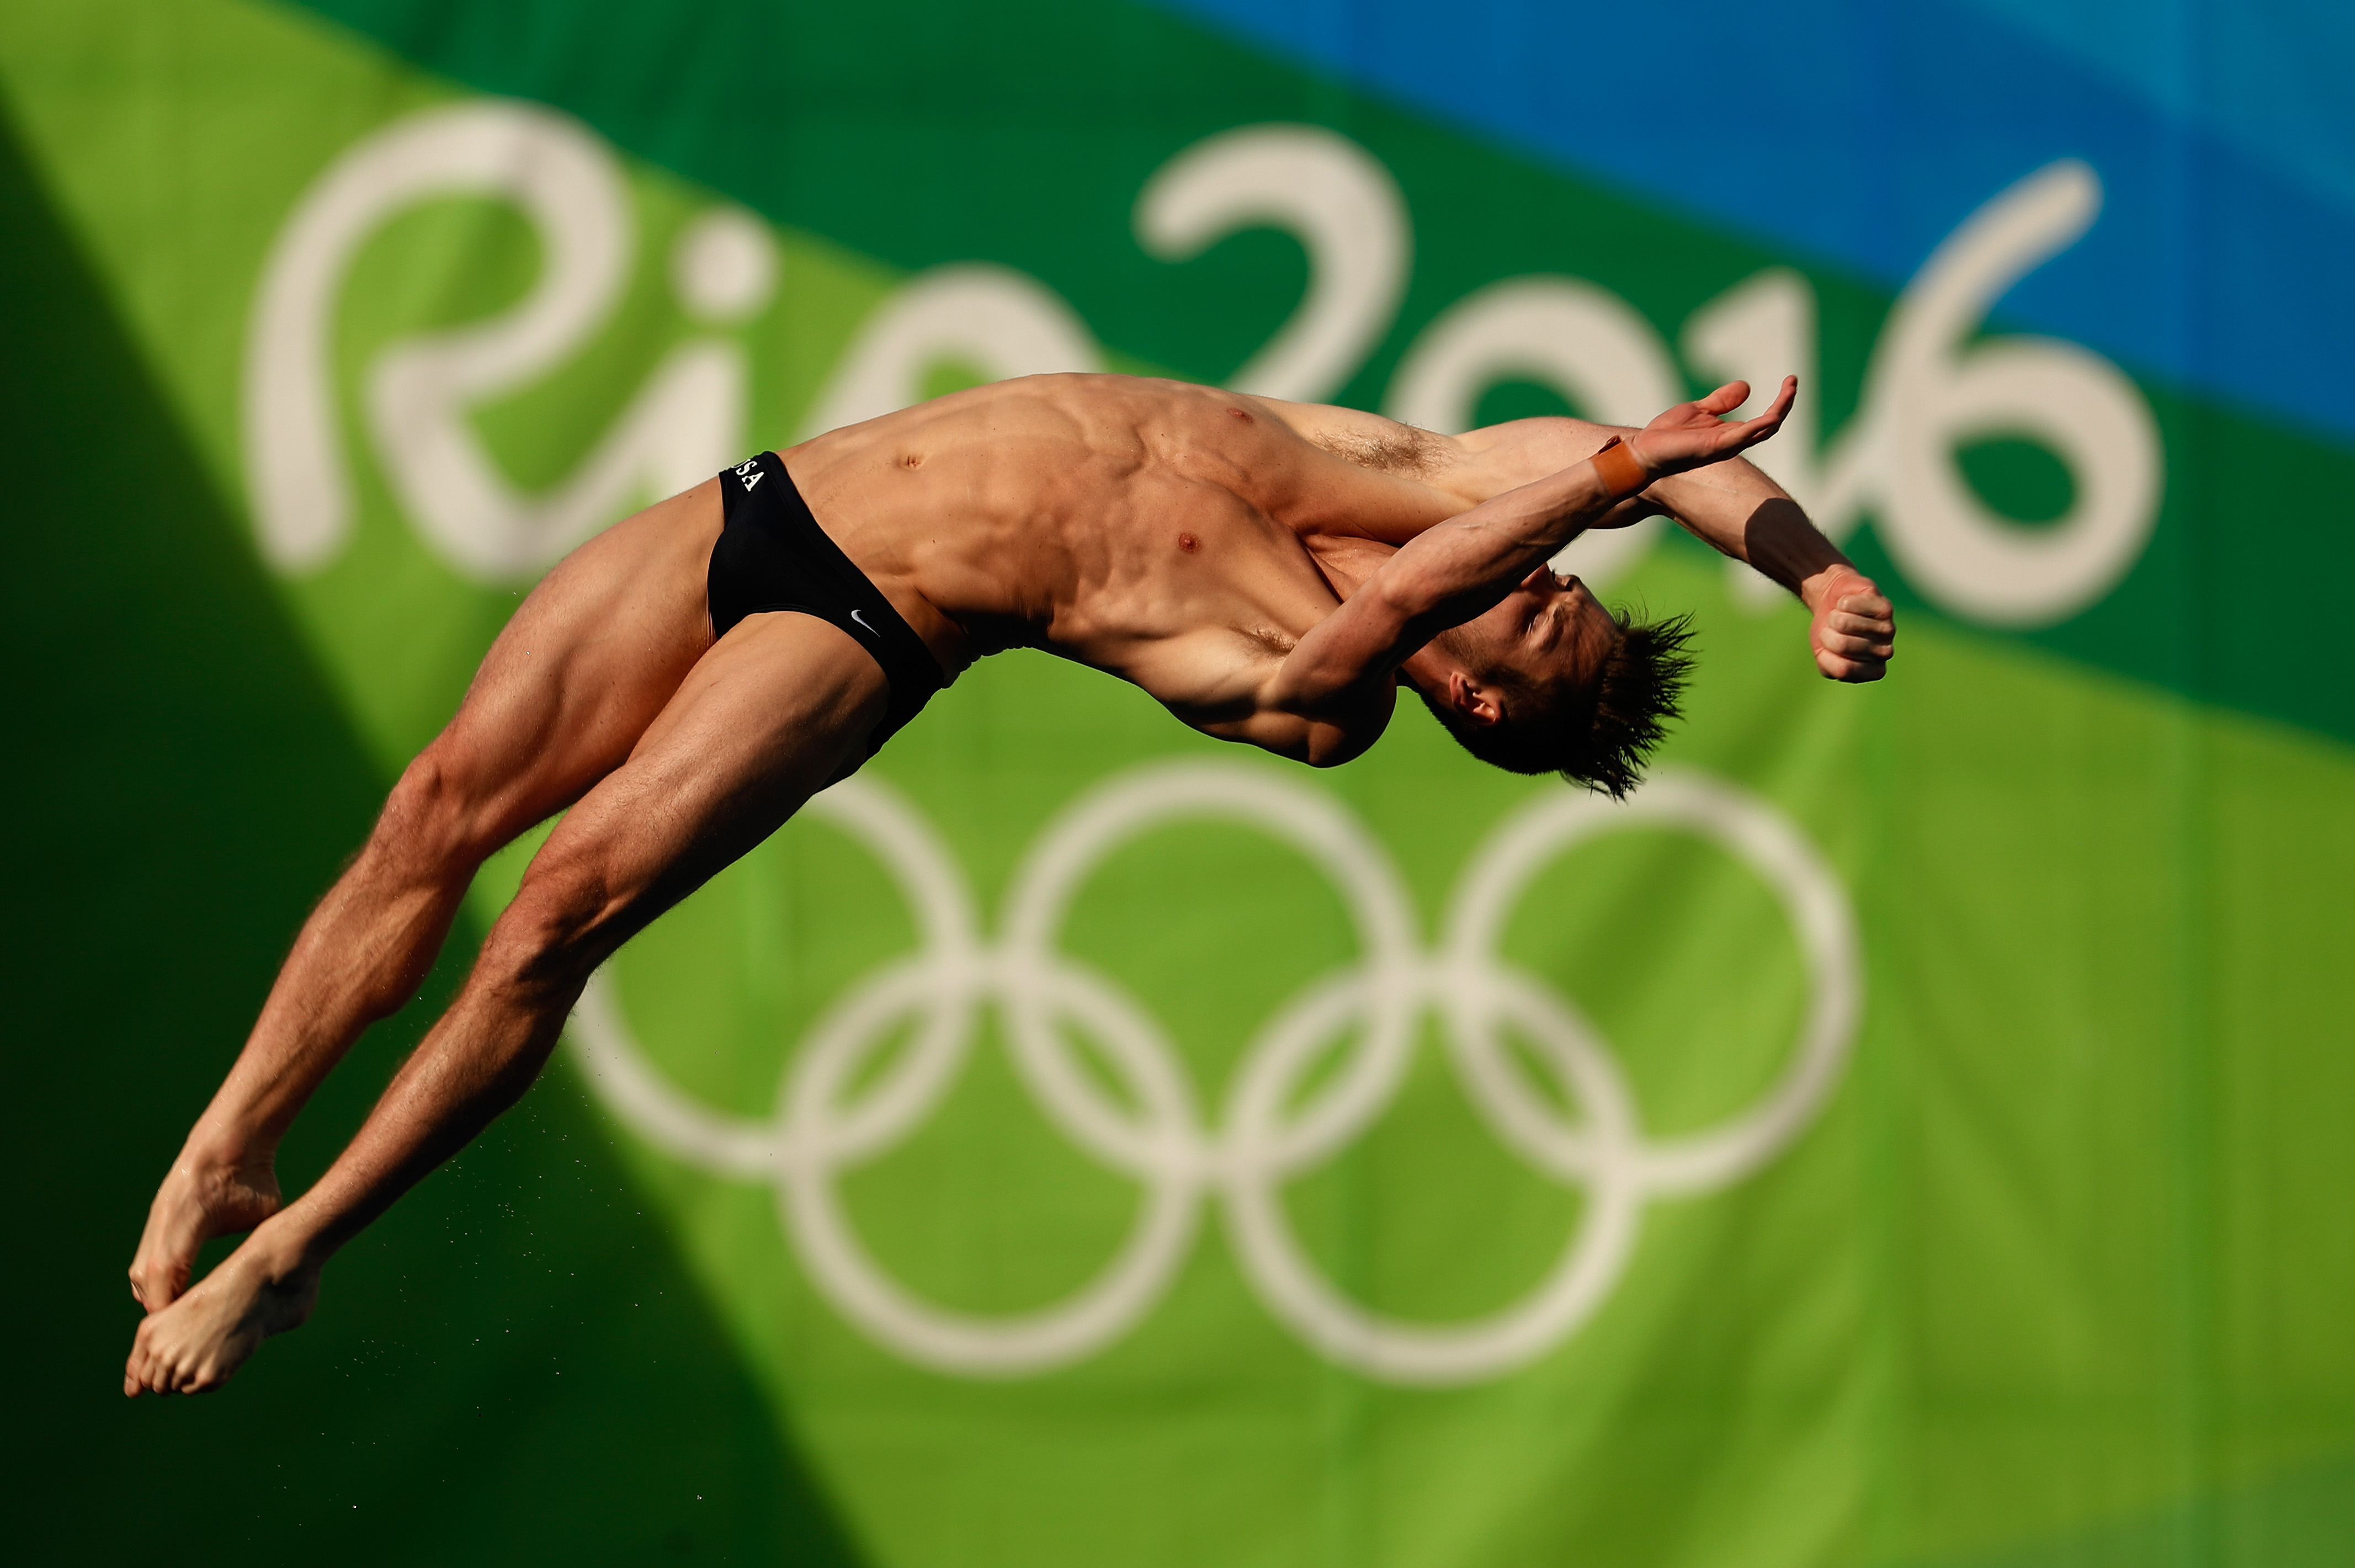 David Boudia competes during the Diving Men's 10m Platform Preliminary on Day 14 of the Rio 2016 Olympic Games, on Aug. 19, 2016.